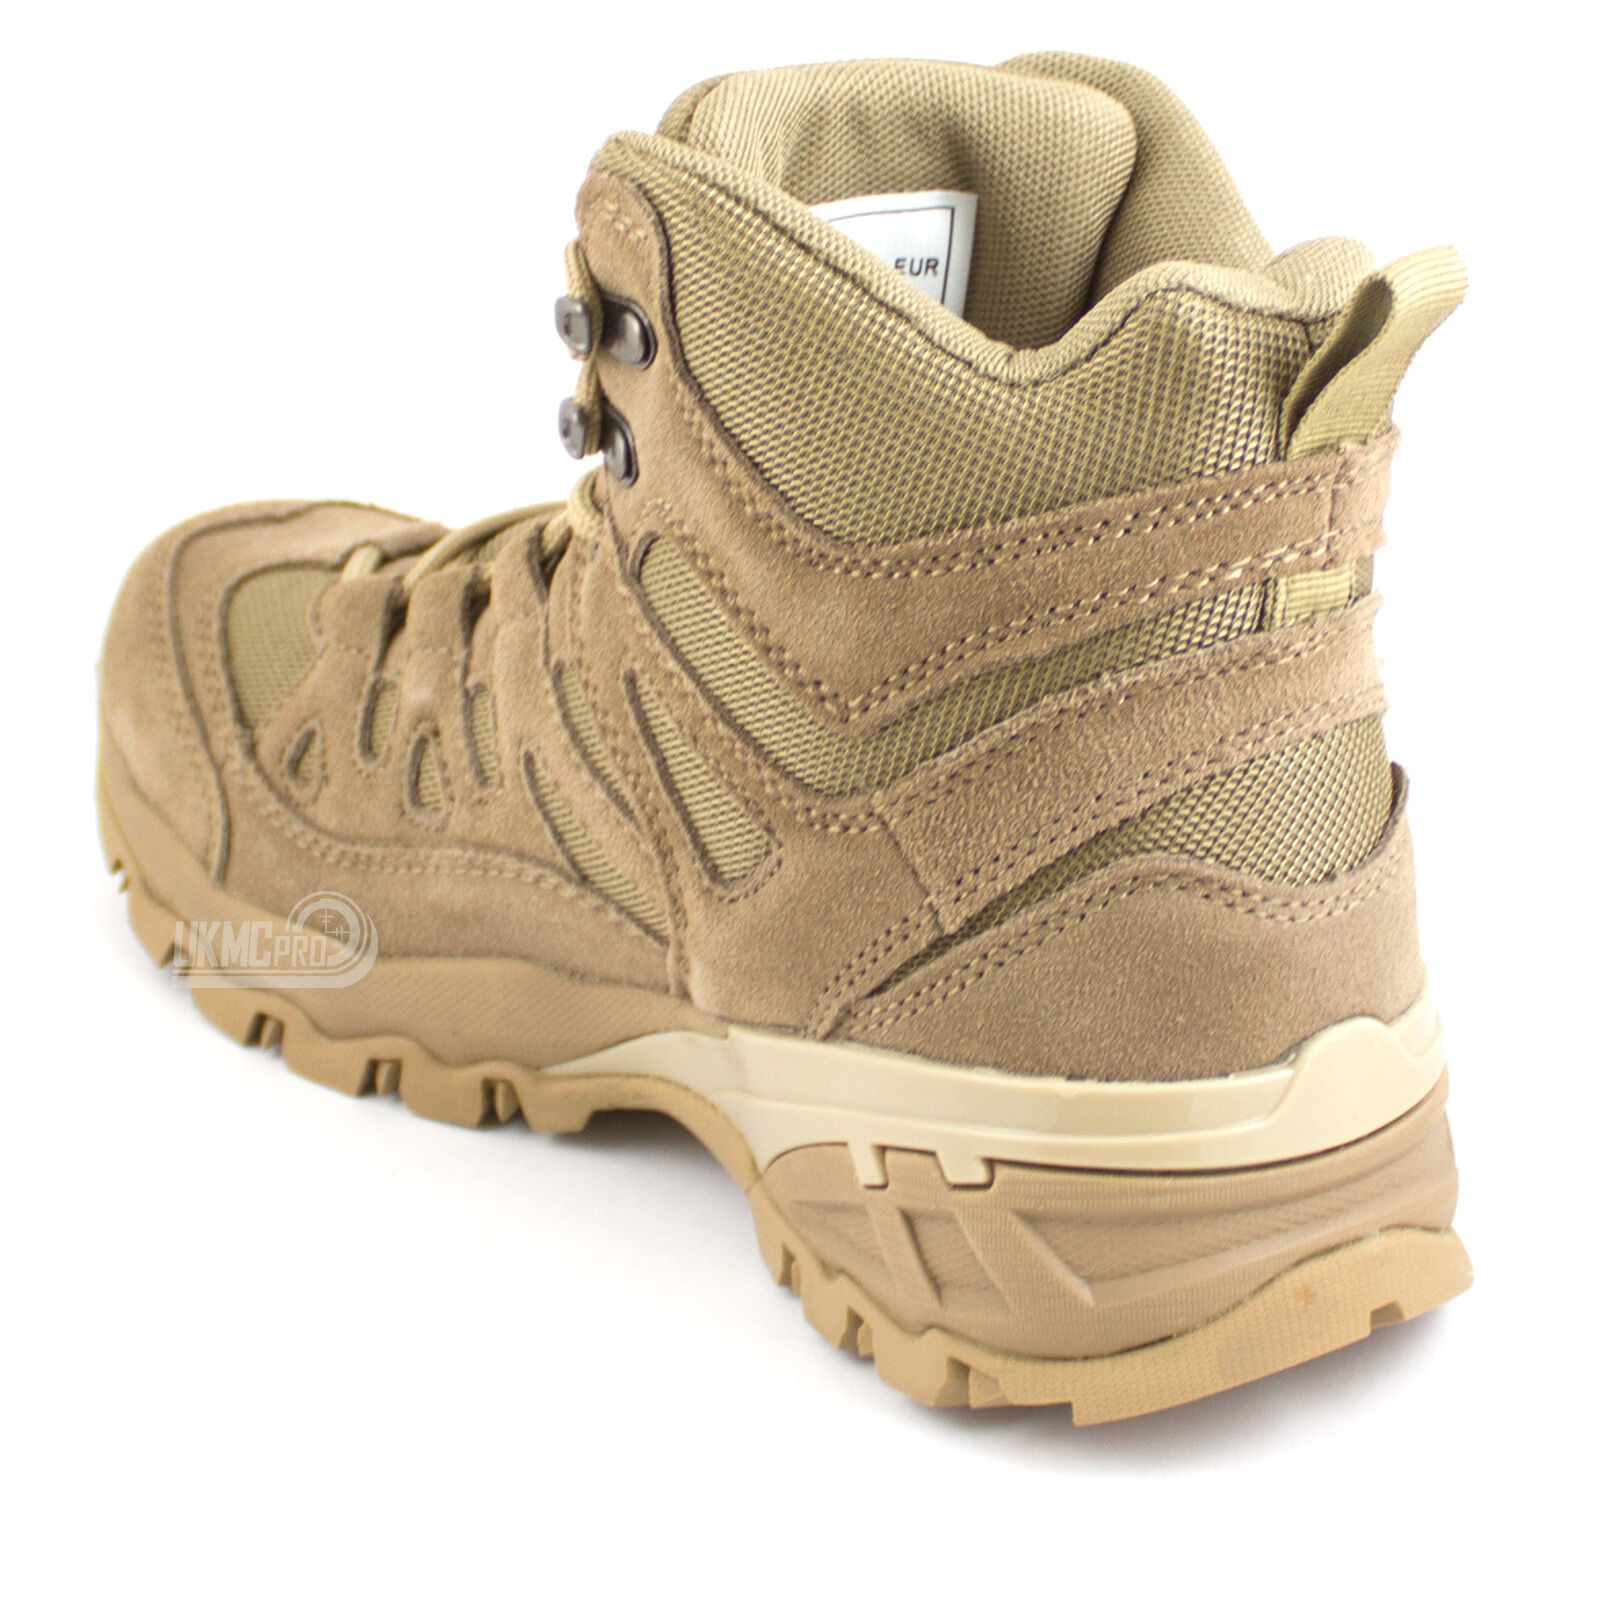 Desert Army Military Tactical Cadet Combat Combat Combat Patrol Work Hunting Light Stiefel Tan 665a0b